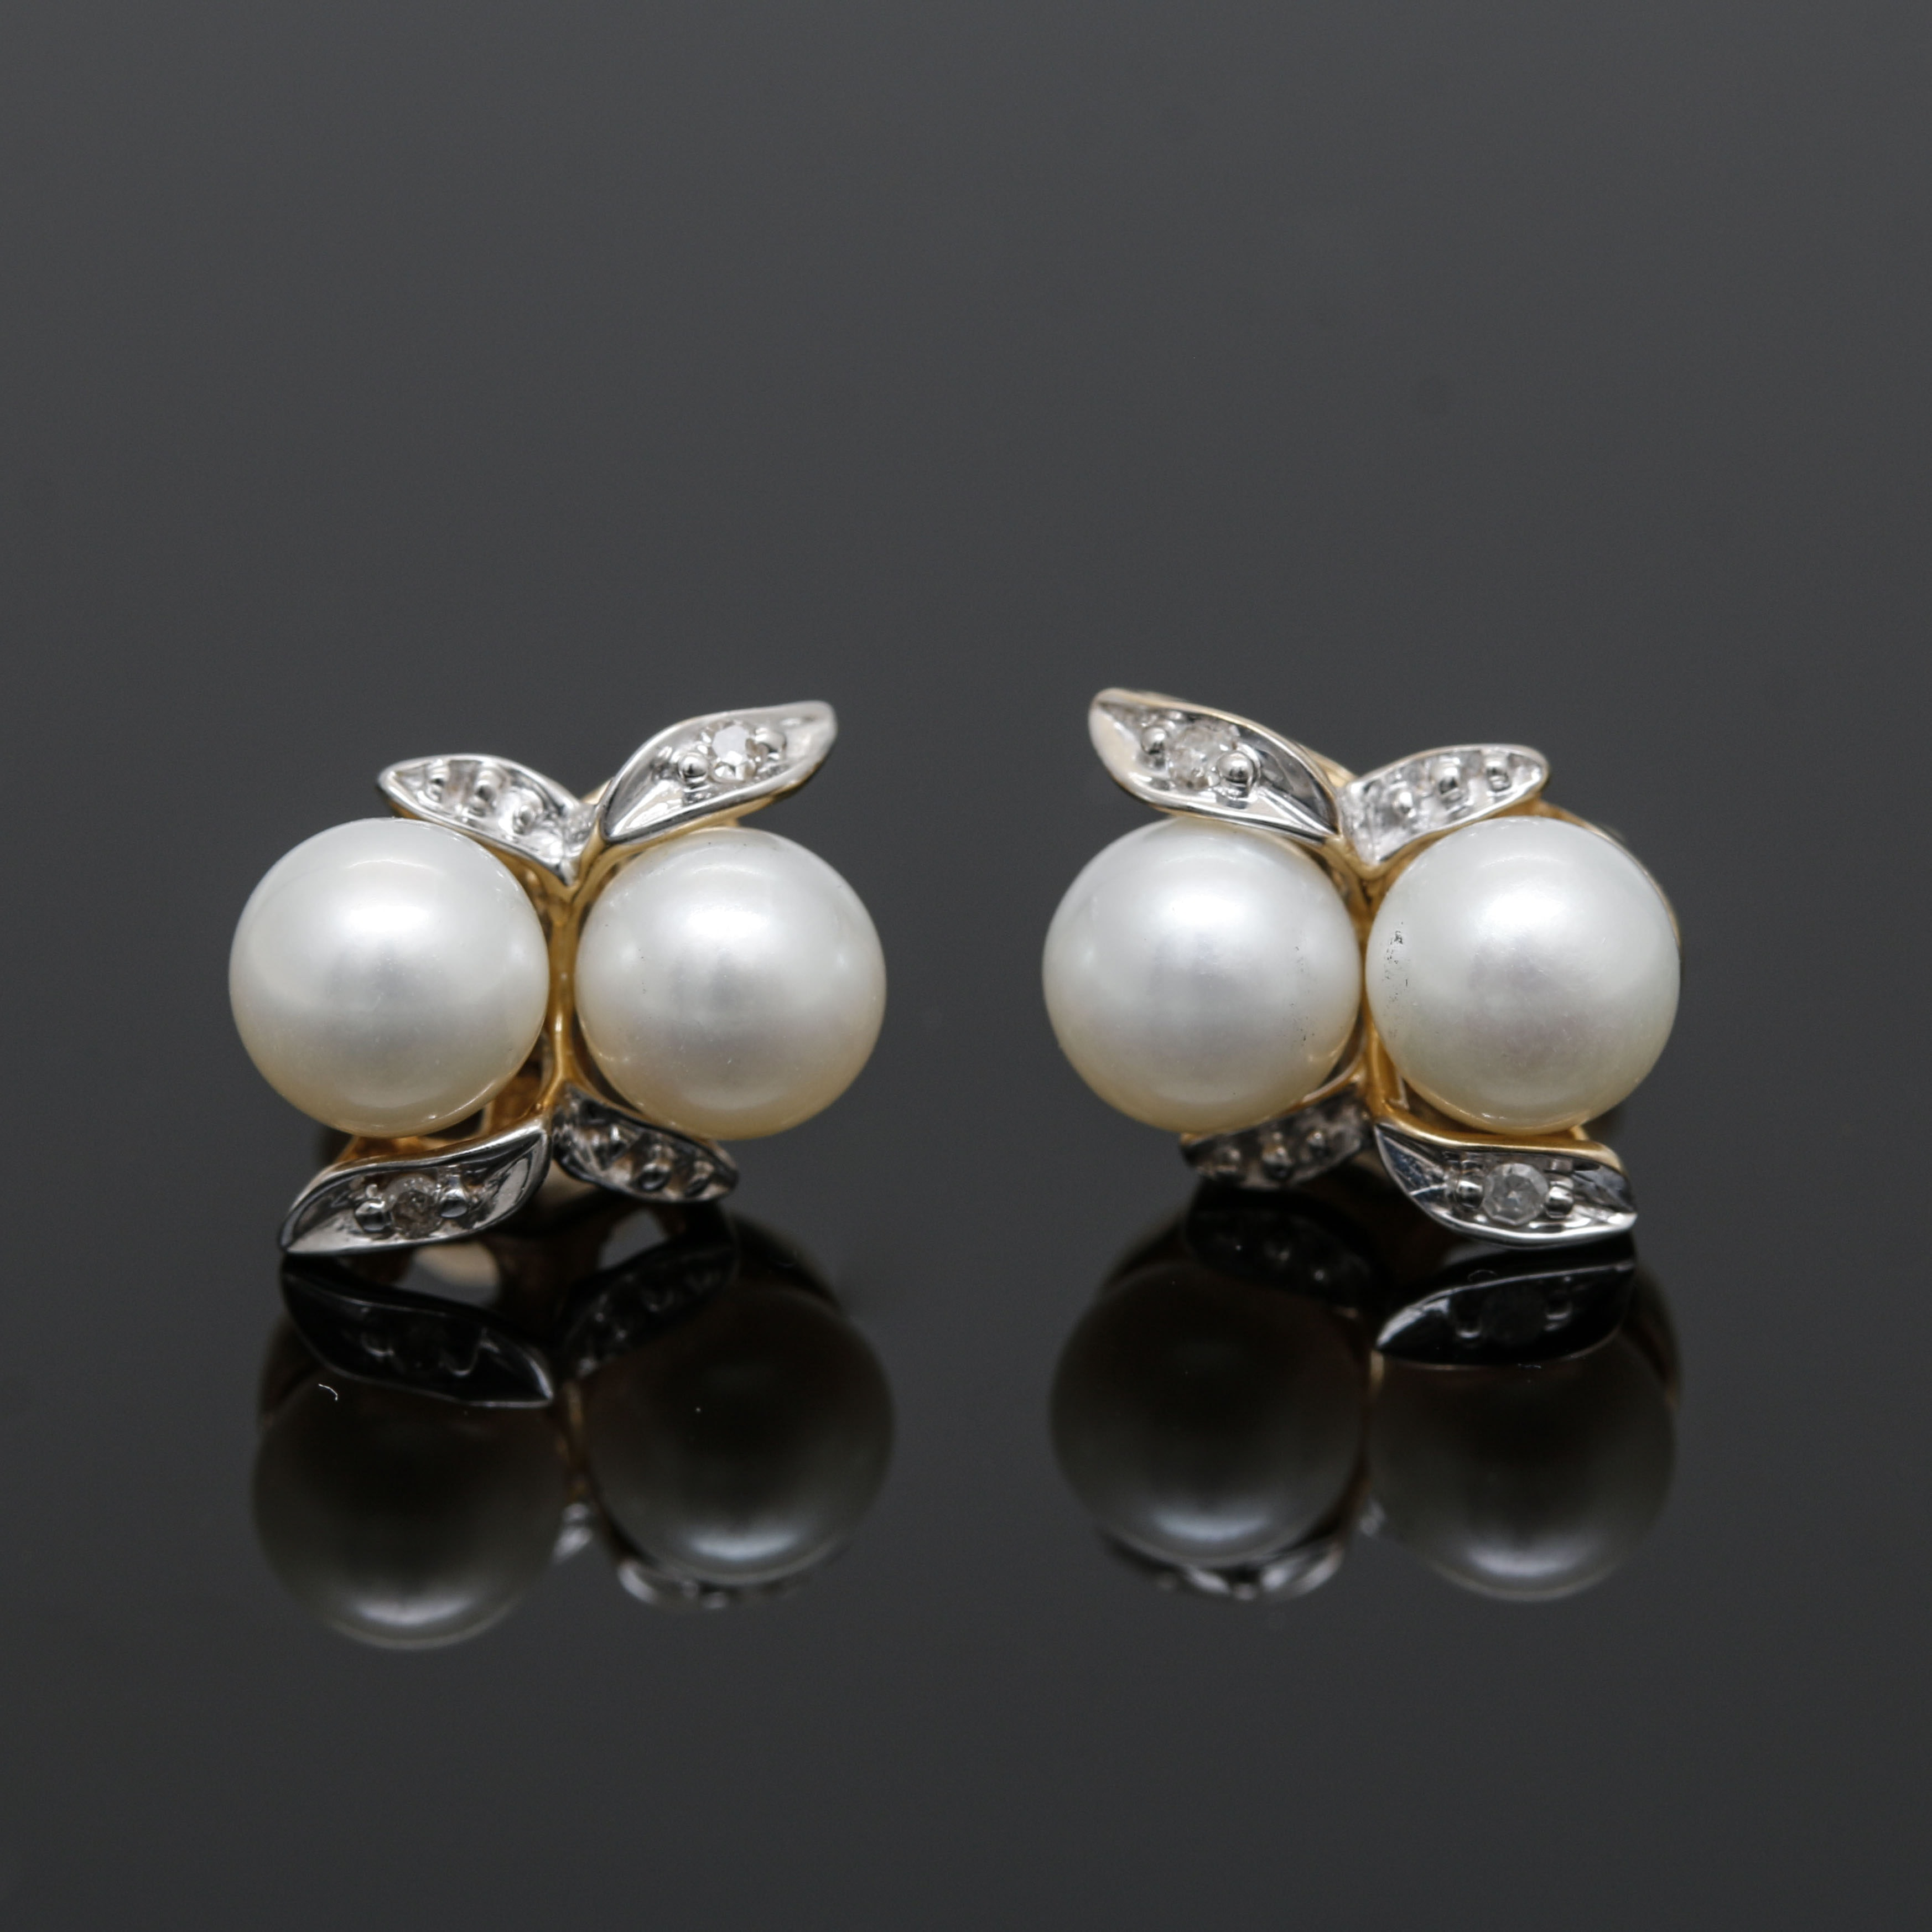 Alwand Vahan 14K Yellow and White Gold Cultured Pearl and Diamond Earrings